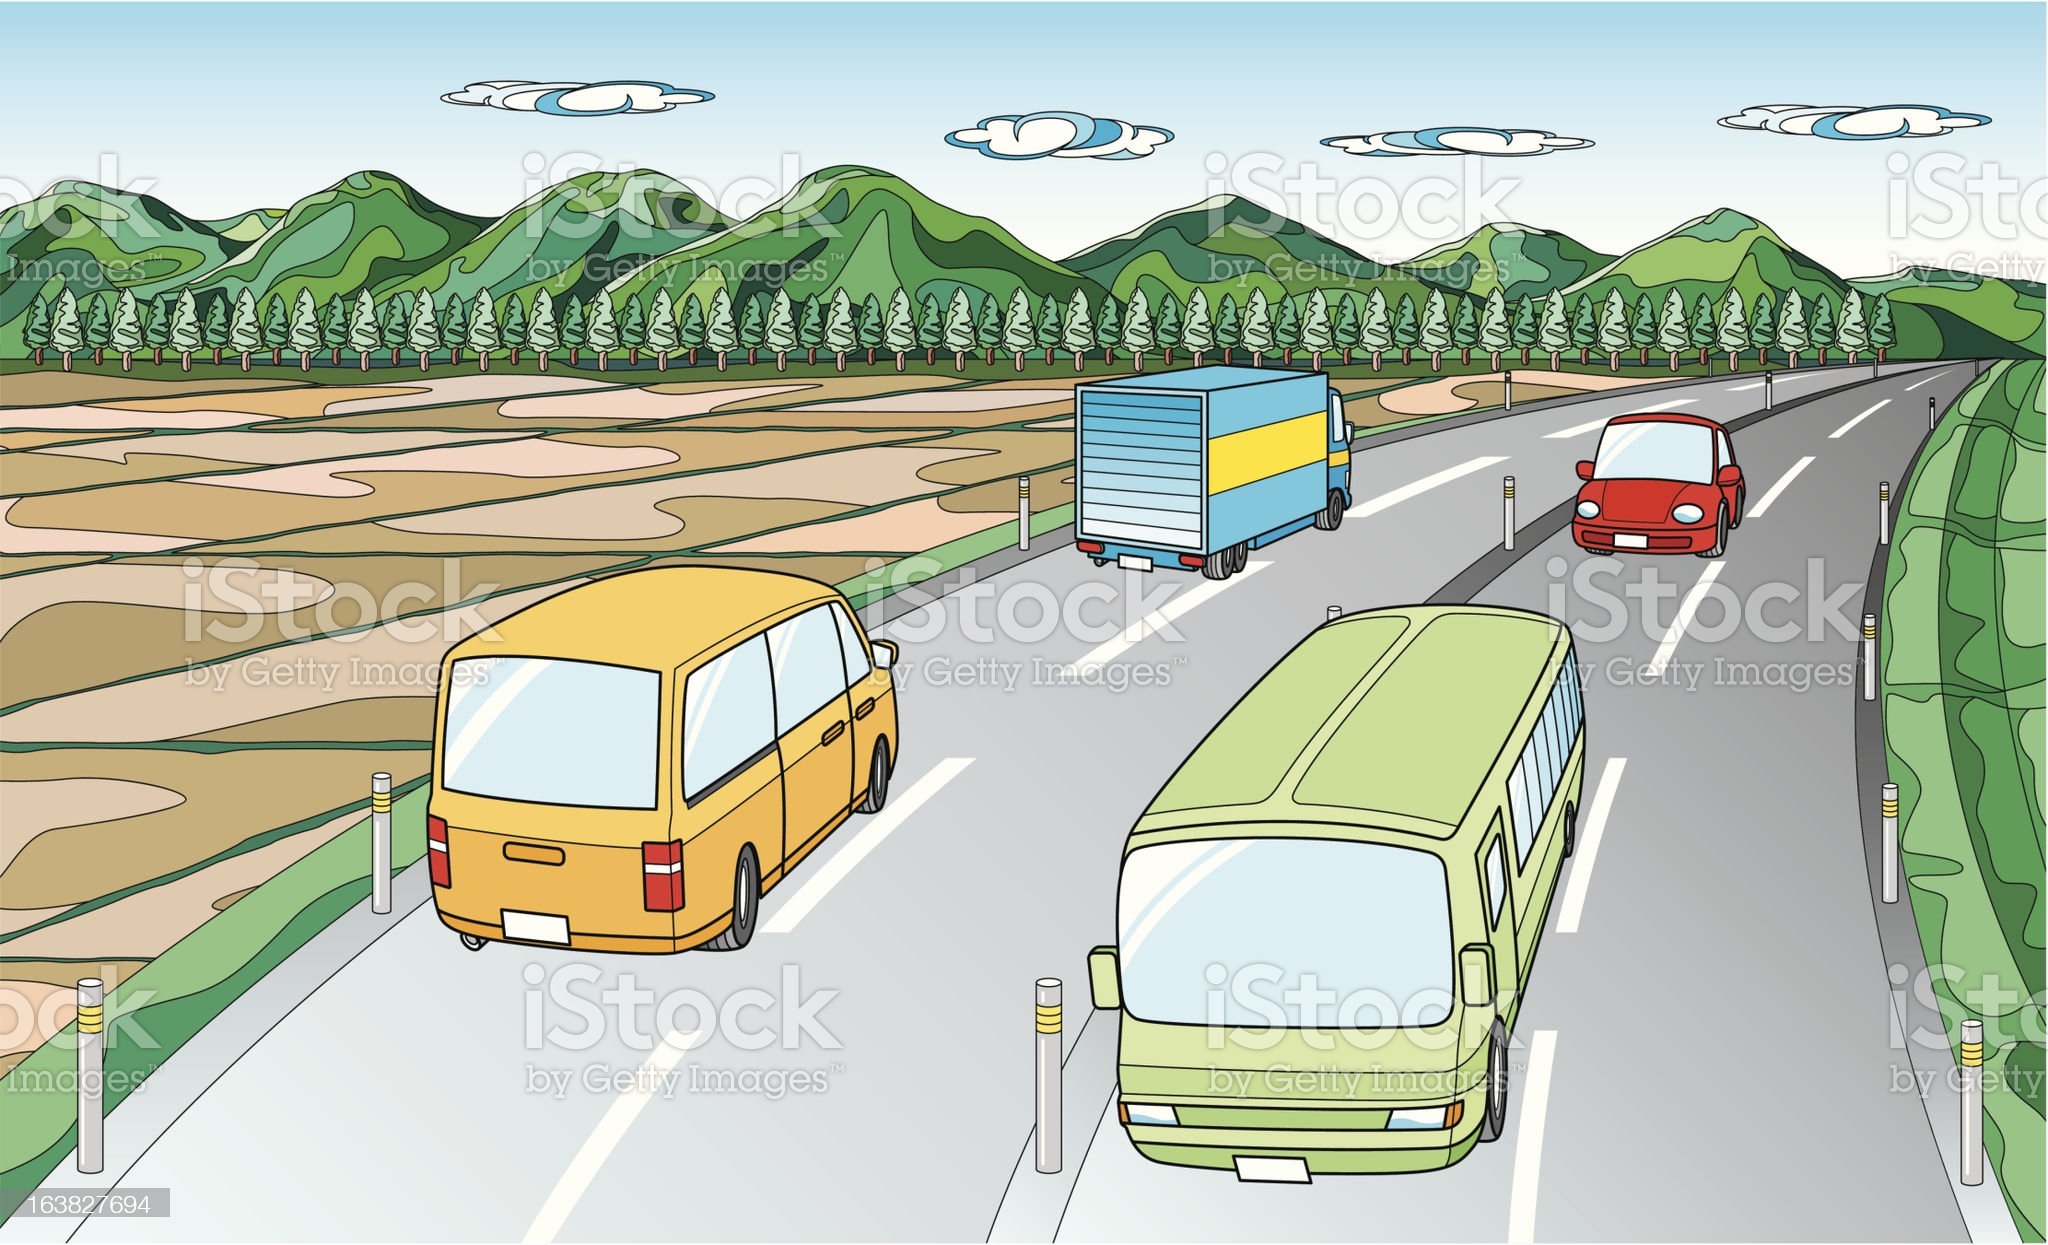 Scenery with road royalty-free stock vector art